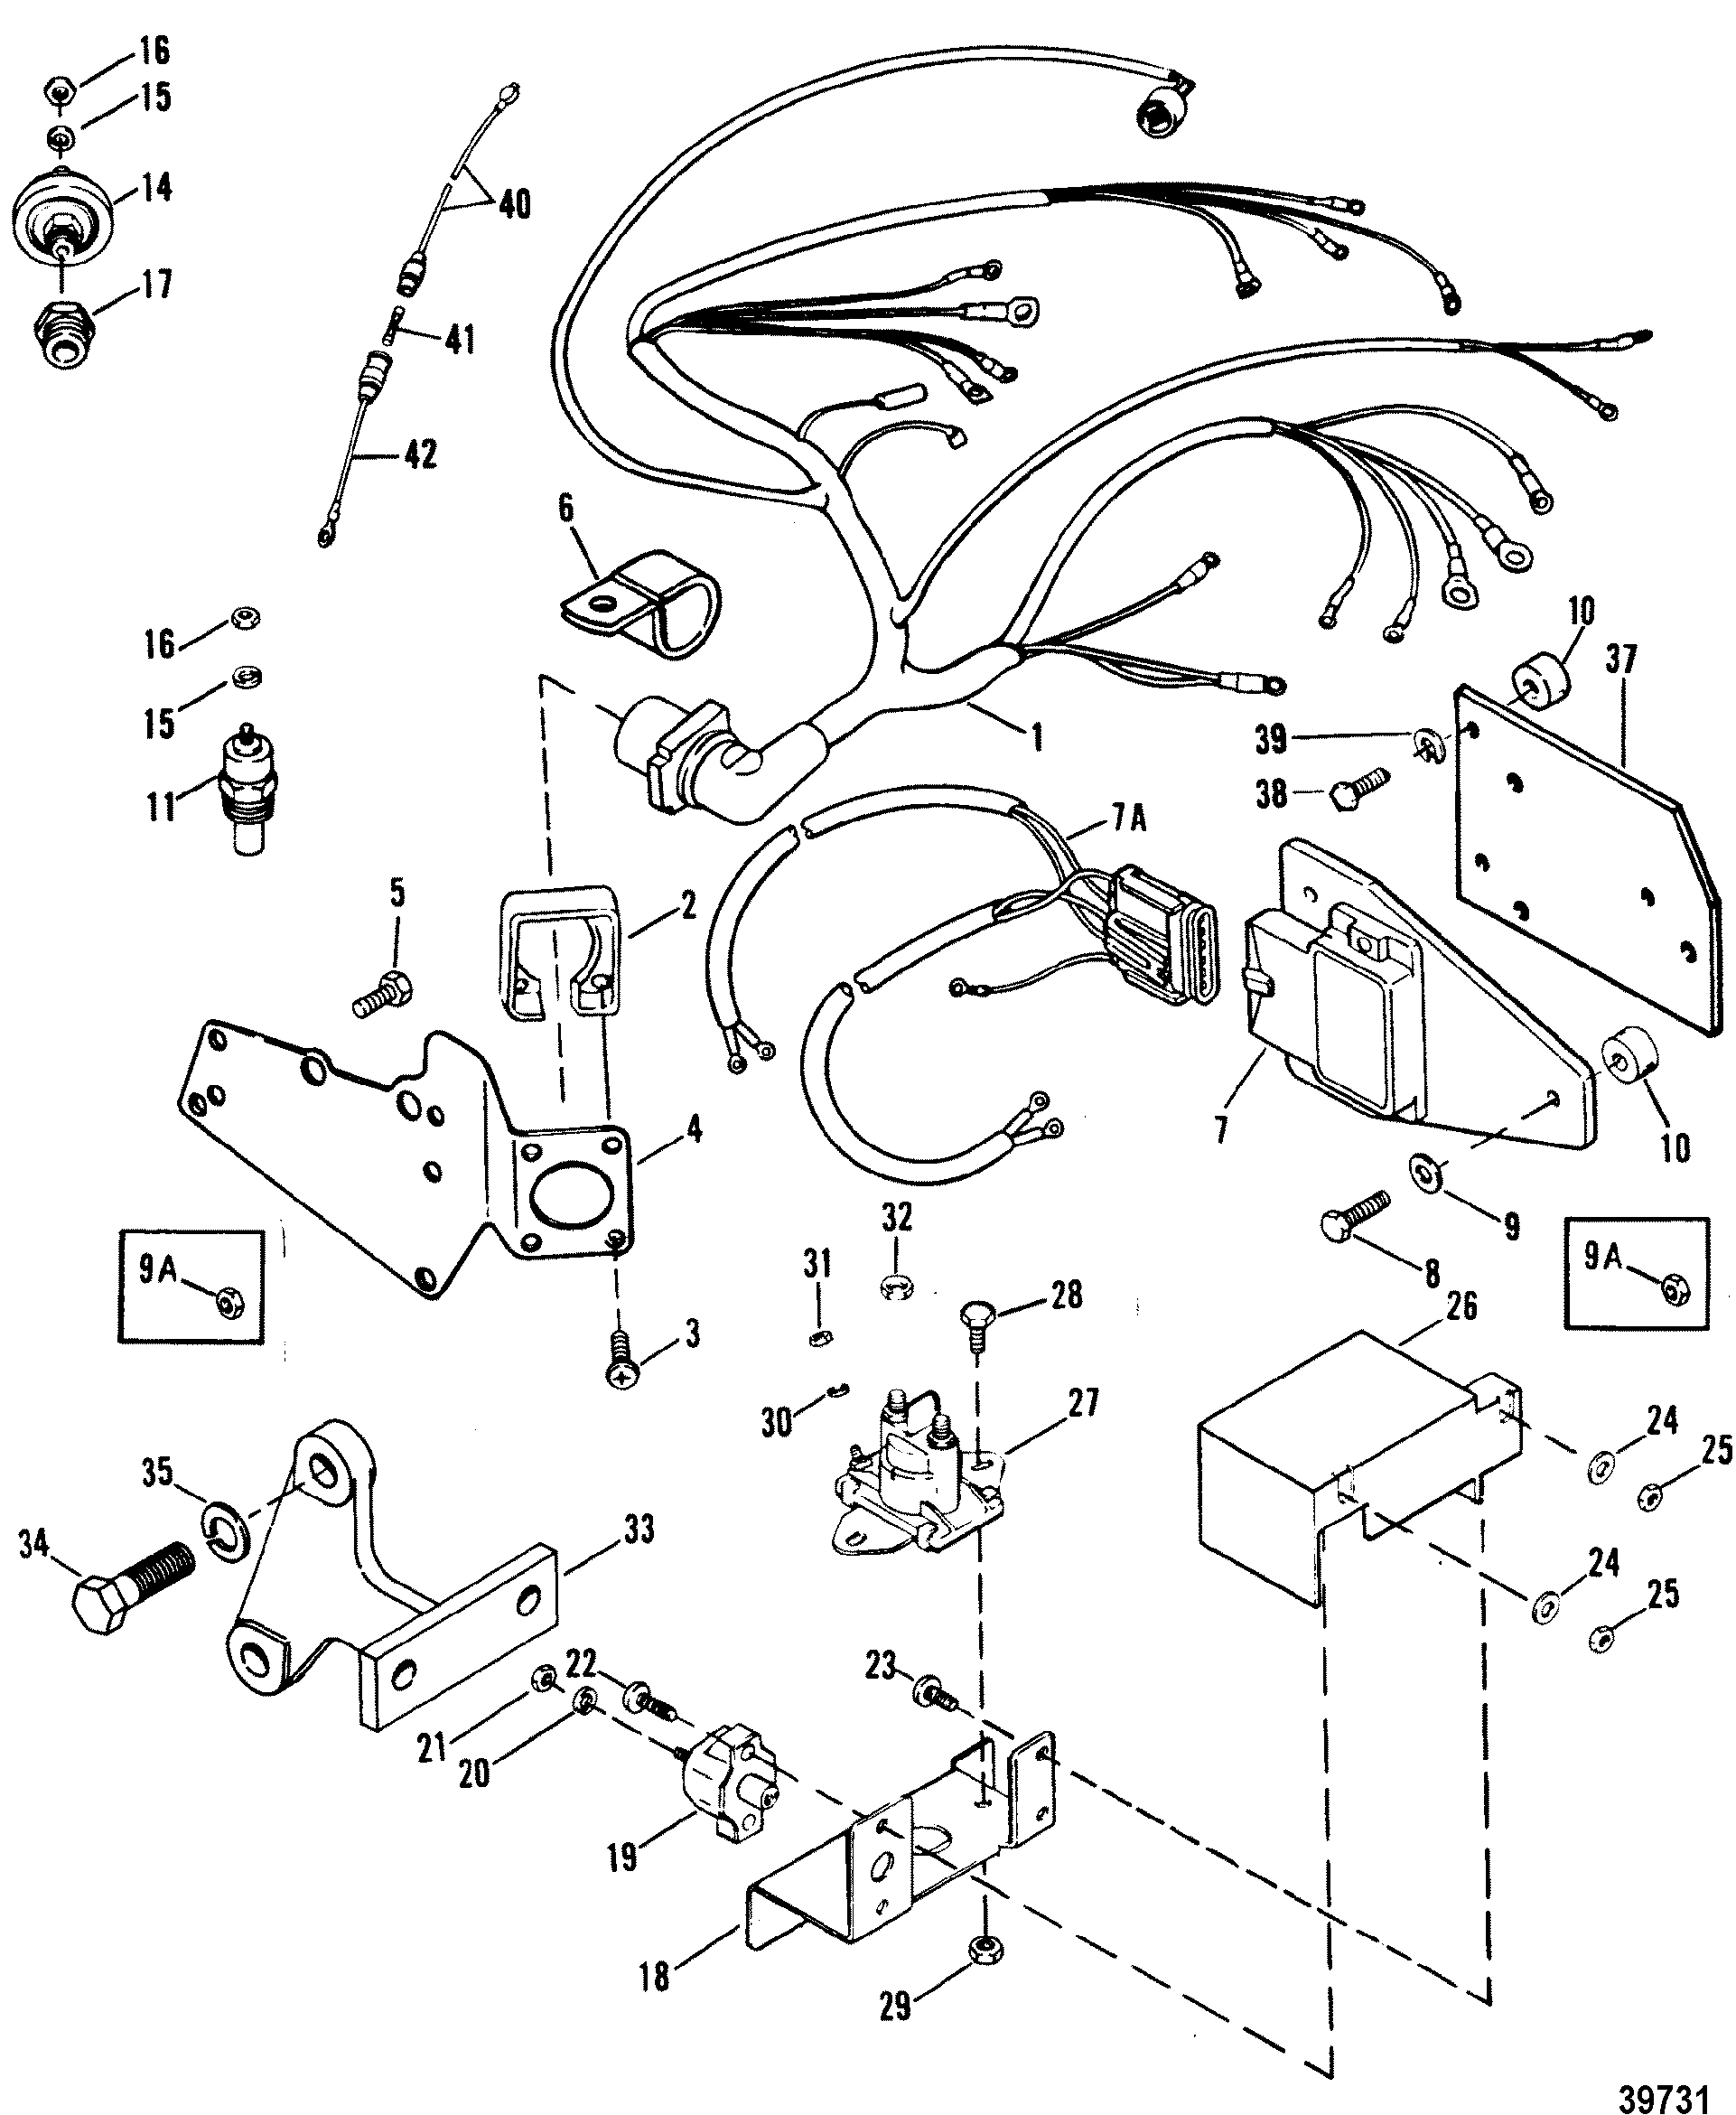 39731 wiring harness, electrical and ignition for mercruiser 7 4l bravo mercruiser wiring harness at mifinder.co